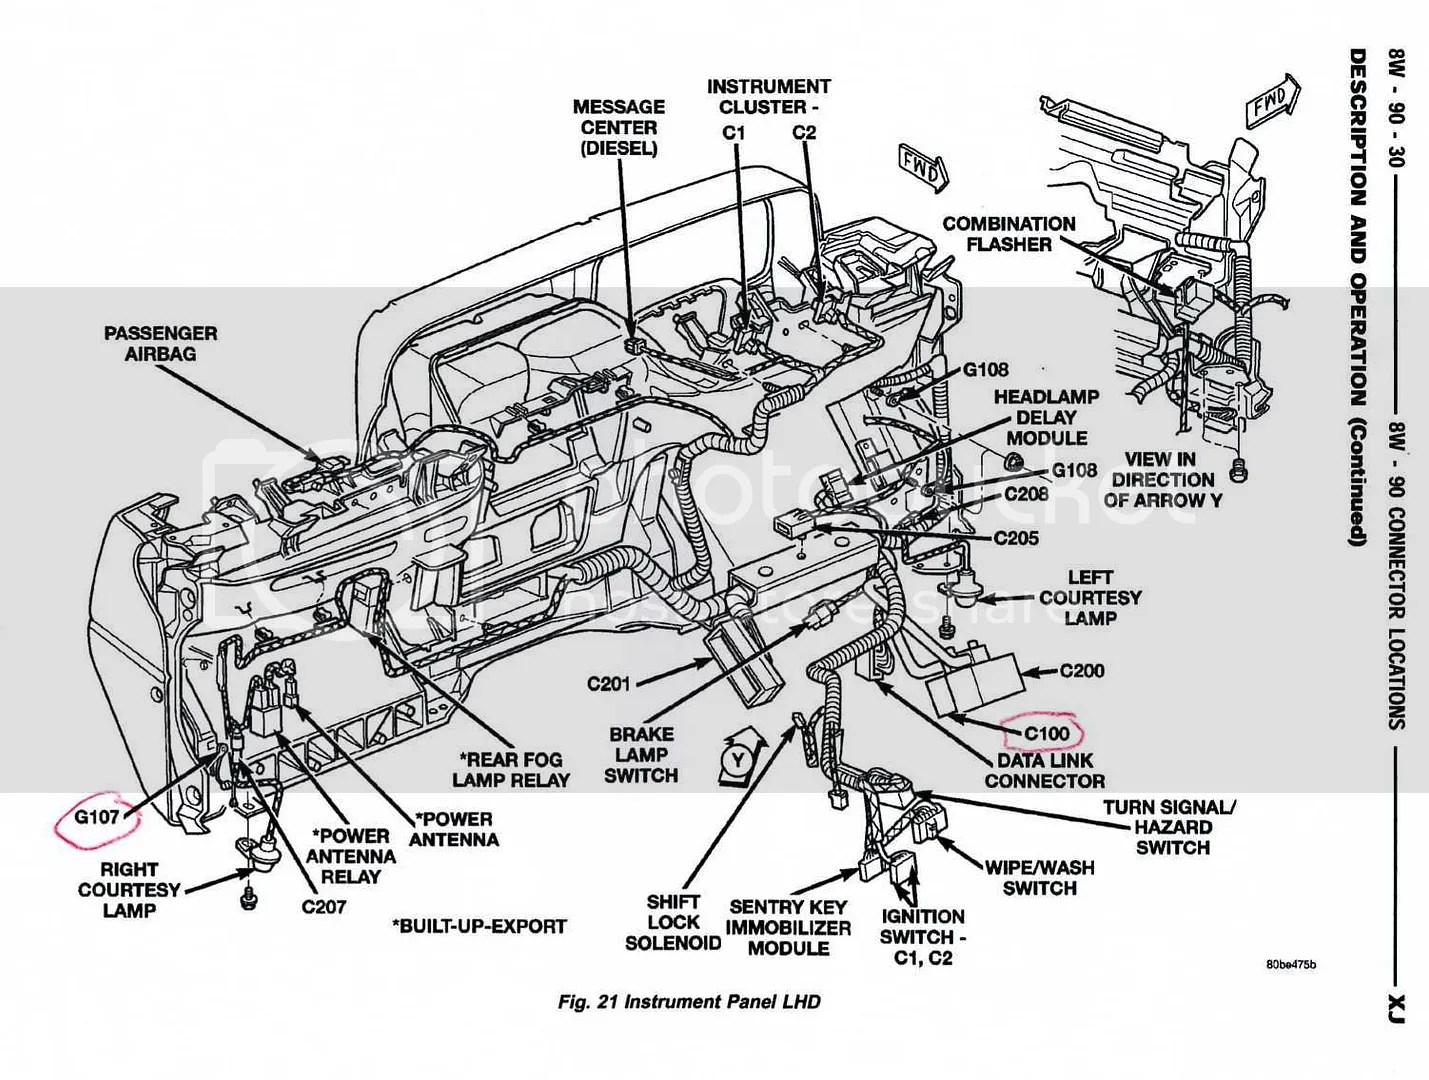 Jeep Grand Cherokee Laredo Engine Diagram